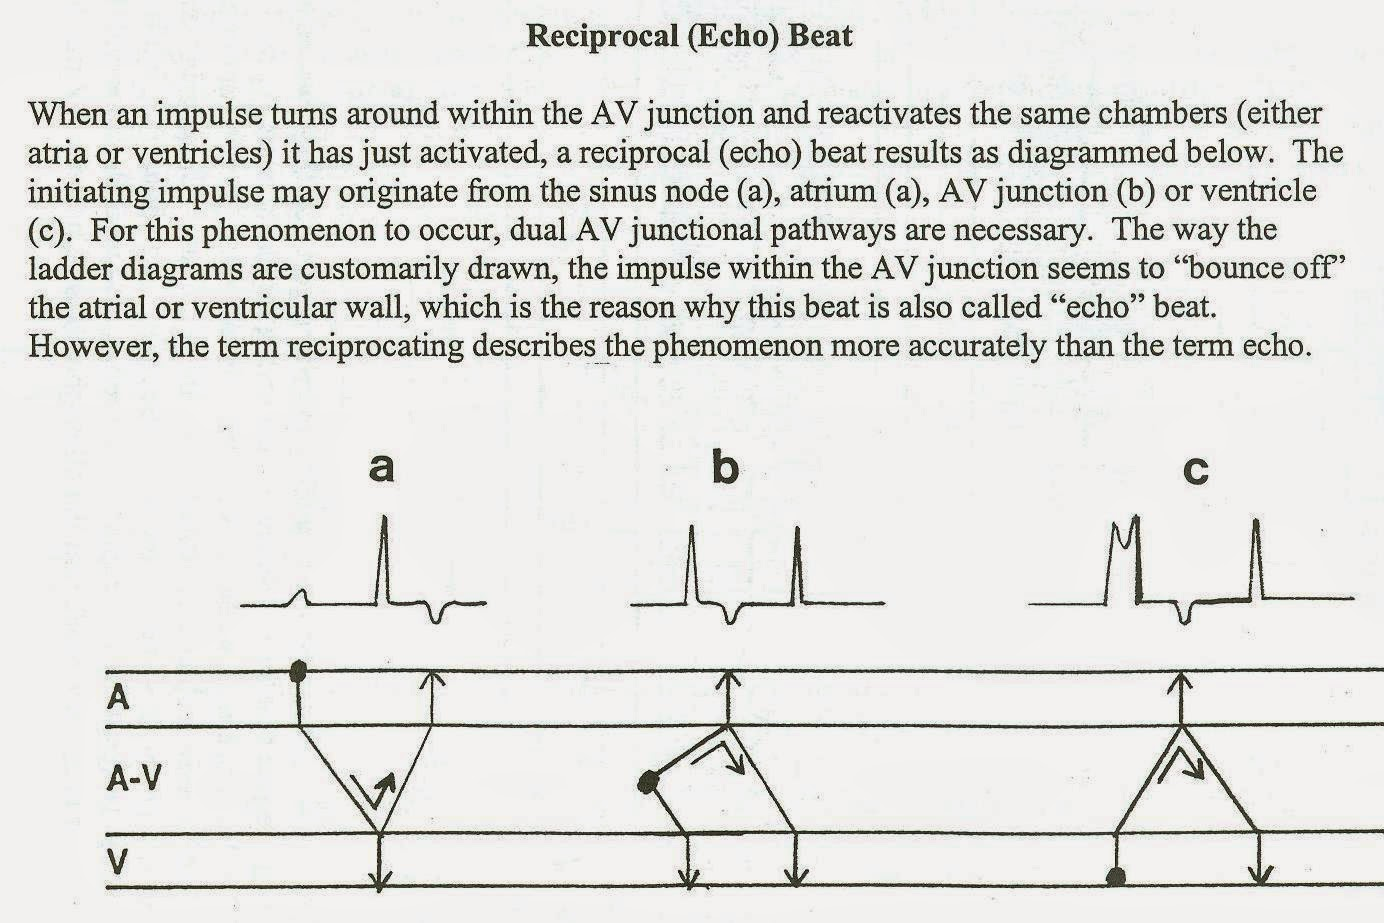 medium resolution of here he explains it in the context of an echo beat first he explains the echo beat then he shows a case of retrograde wenckebach with an echo beat